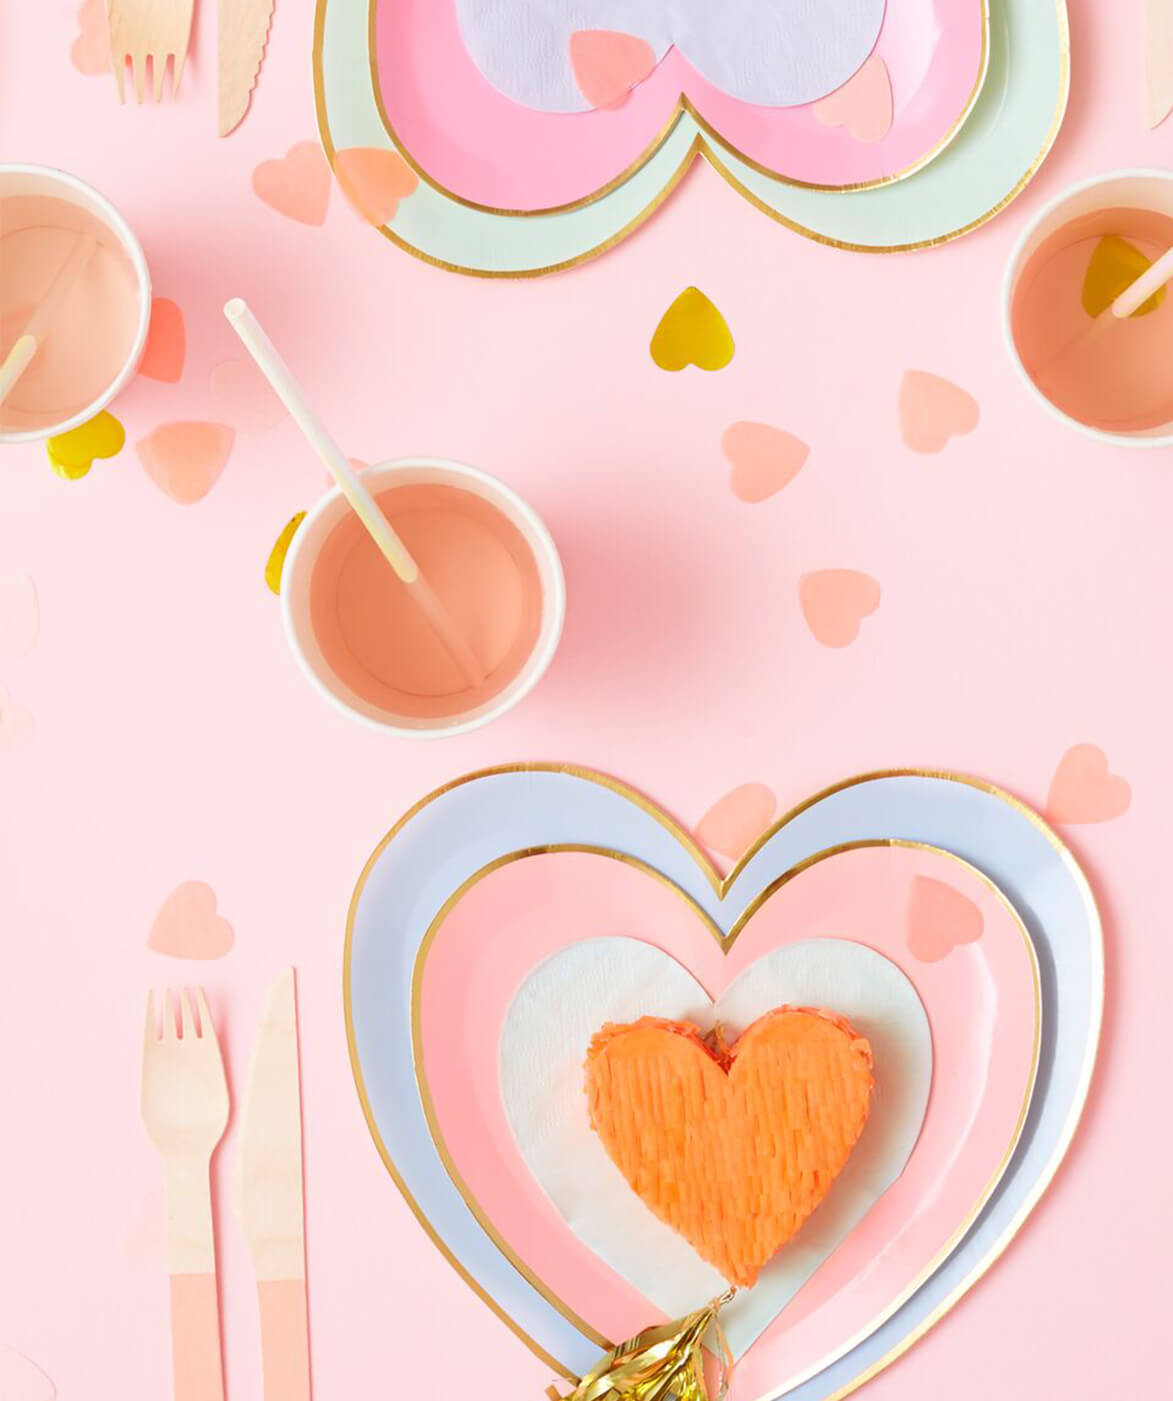 LARGE  HEART SHAPED PLATES